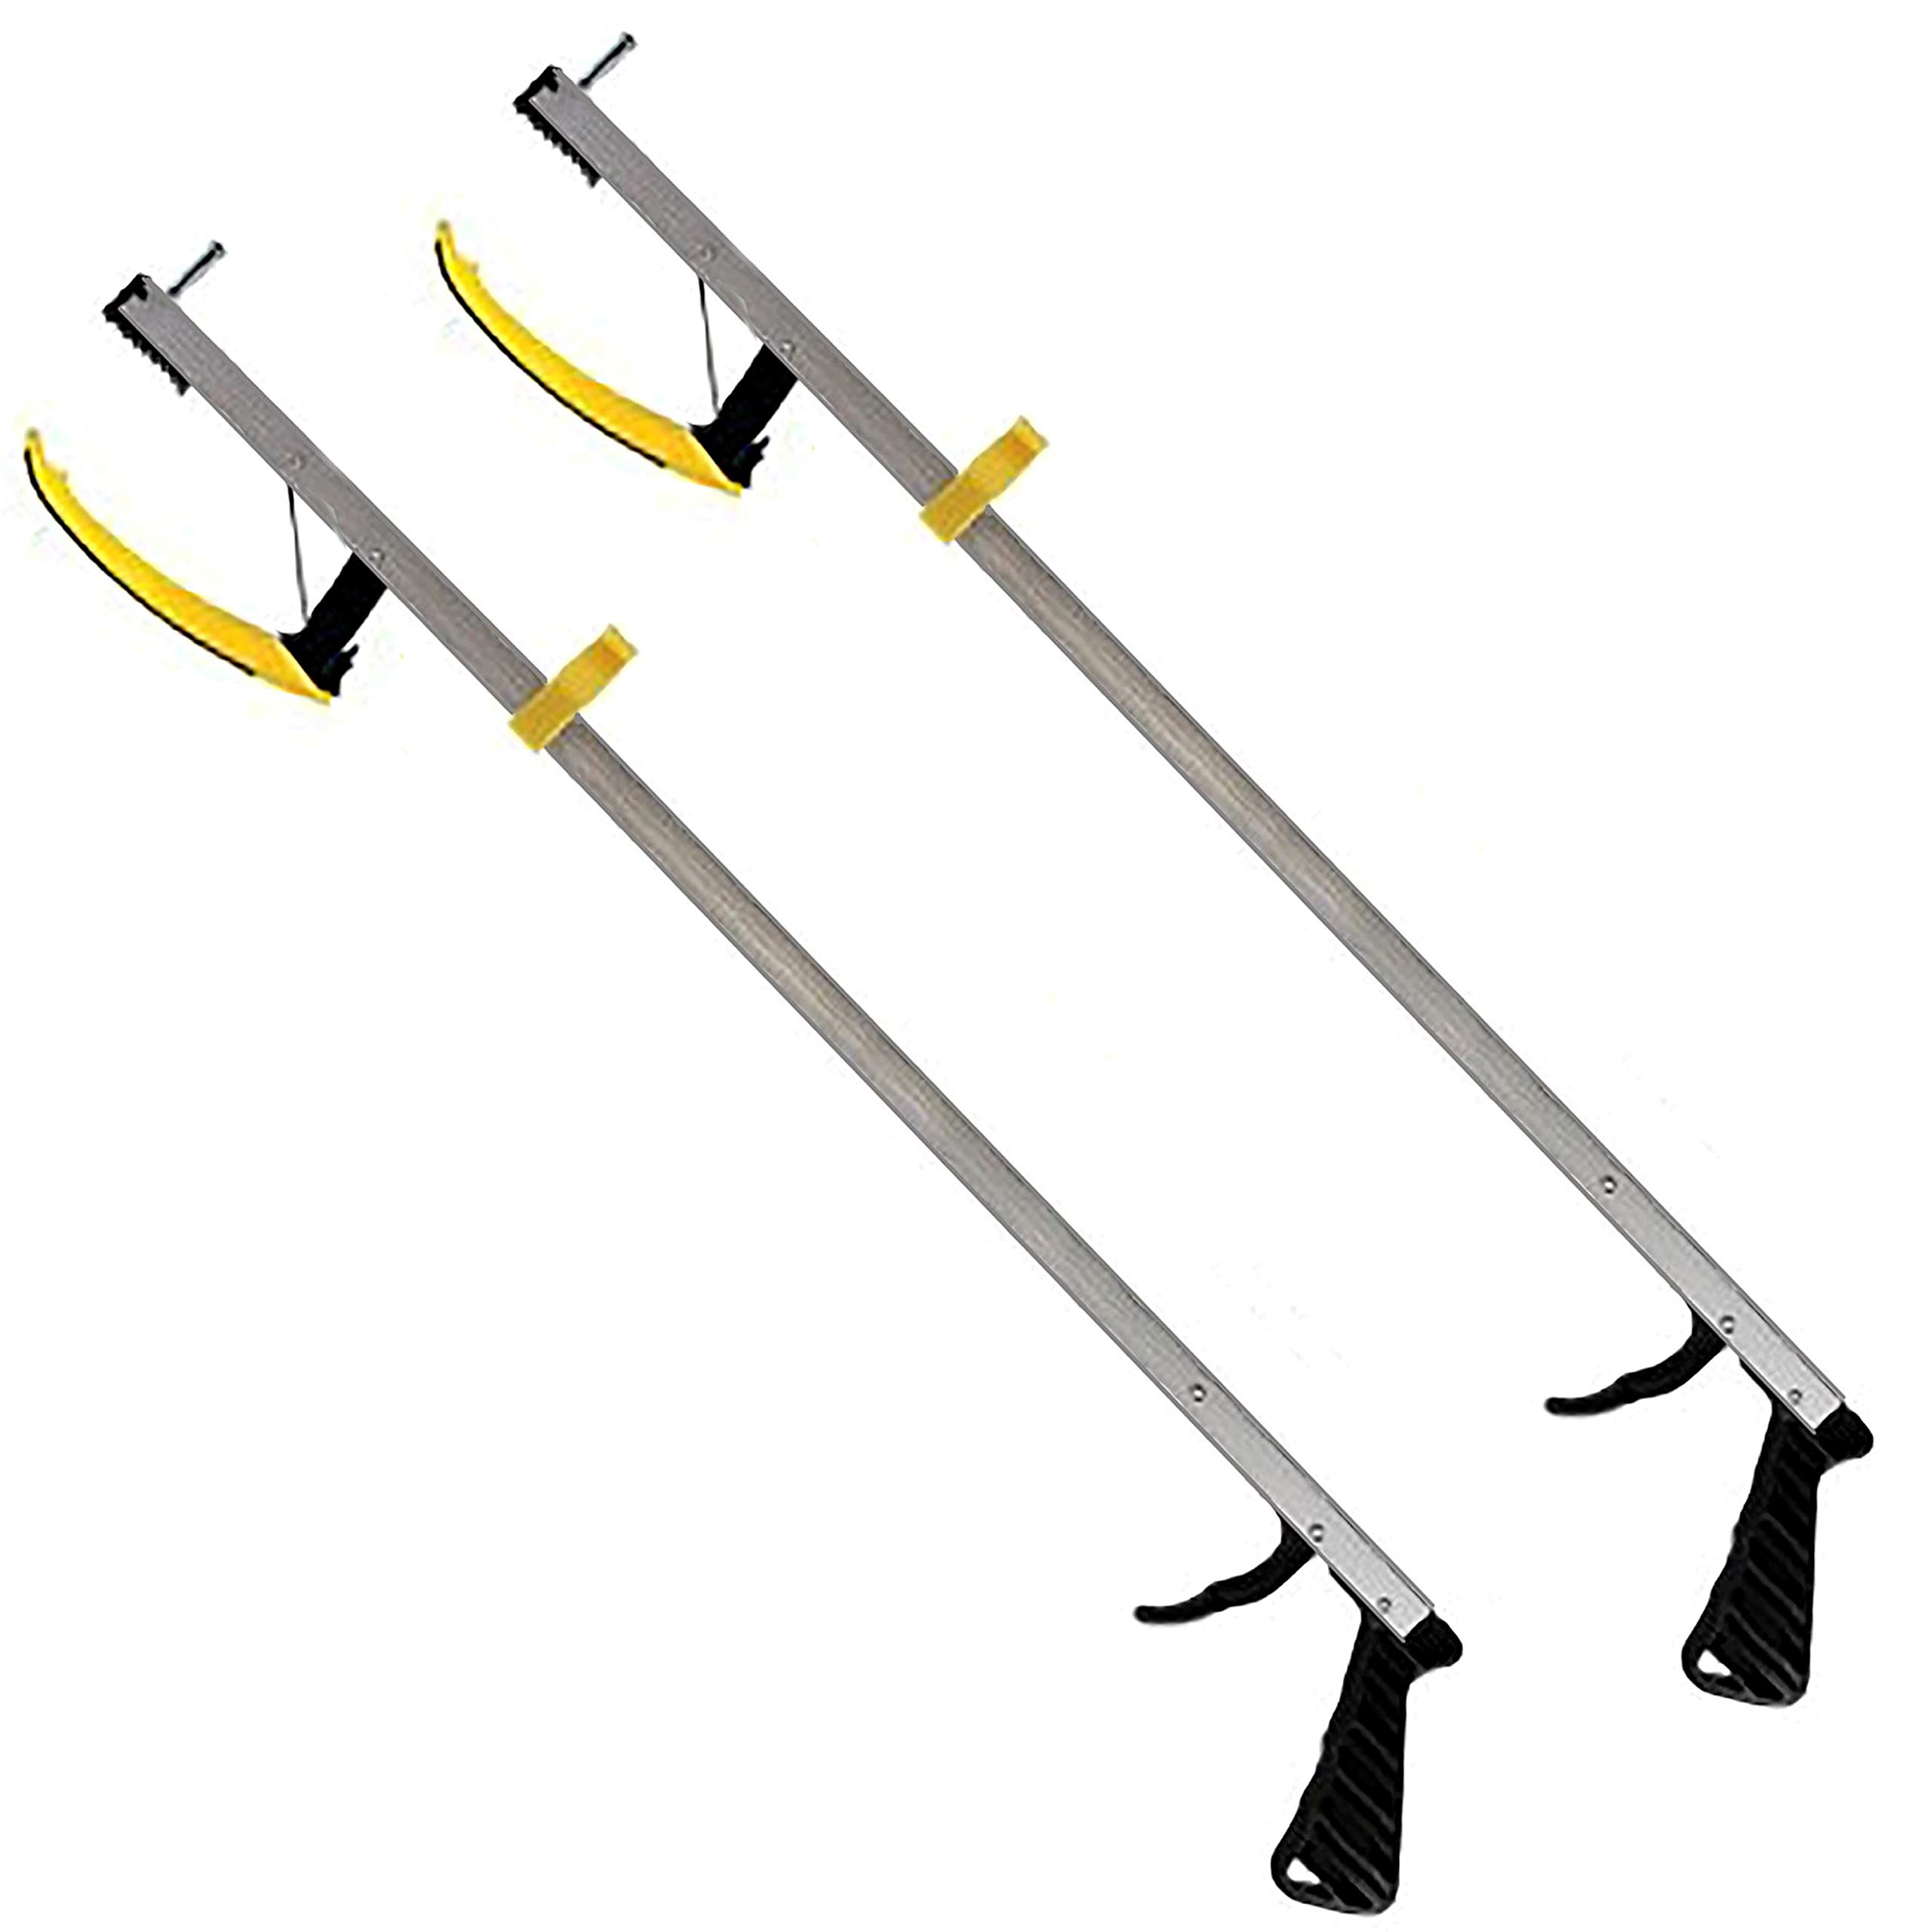 RMS 2-Pack 32 Inches Long Grabber Reacher - Magnetic Tip Helps Pick Up Small Objects - Fitted with Post to Assist with Dressing - Mobility Aid Reaching Assist Tool, Arm Extension (32-inch) by RMS Royal Medical Solutions, Inc.